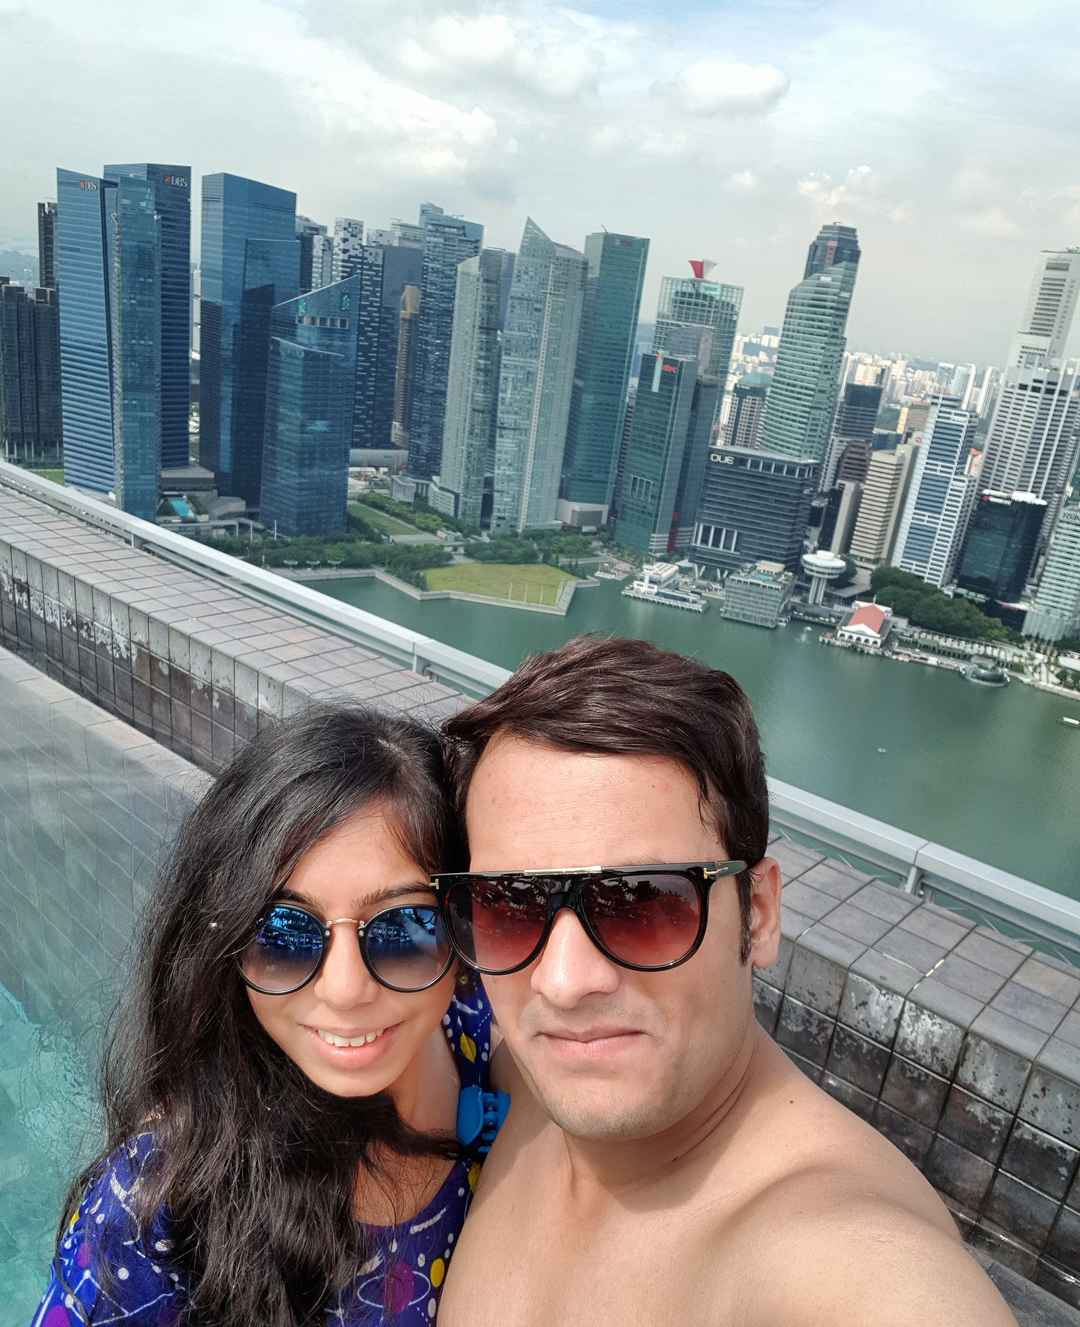 #SelfieWithAView at Top of the Marina Bay Sands Infinity pool #TripotoCommunity